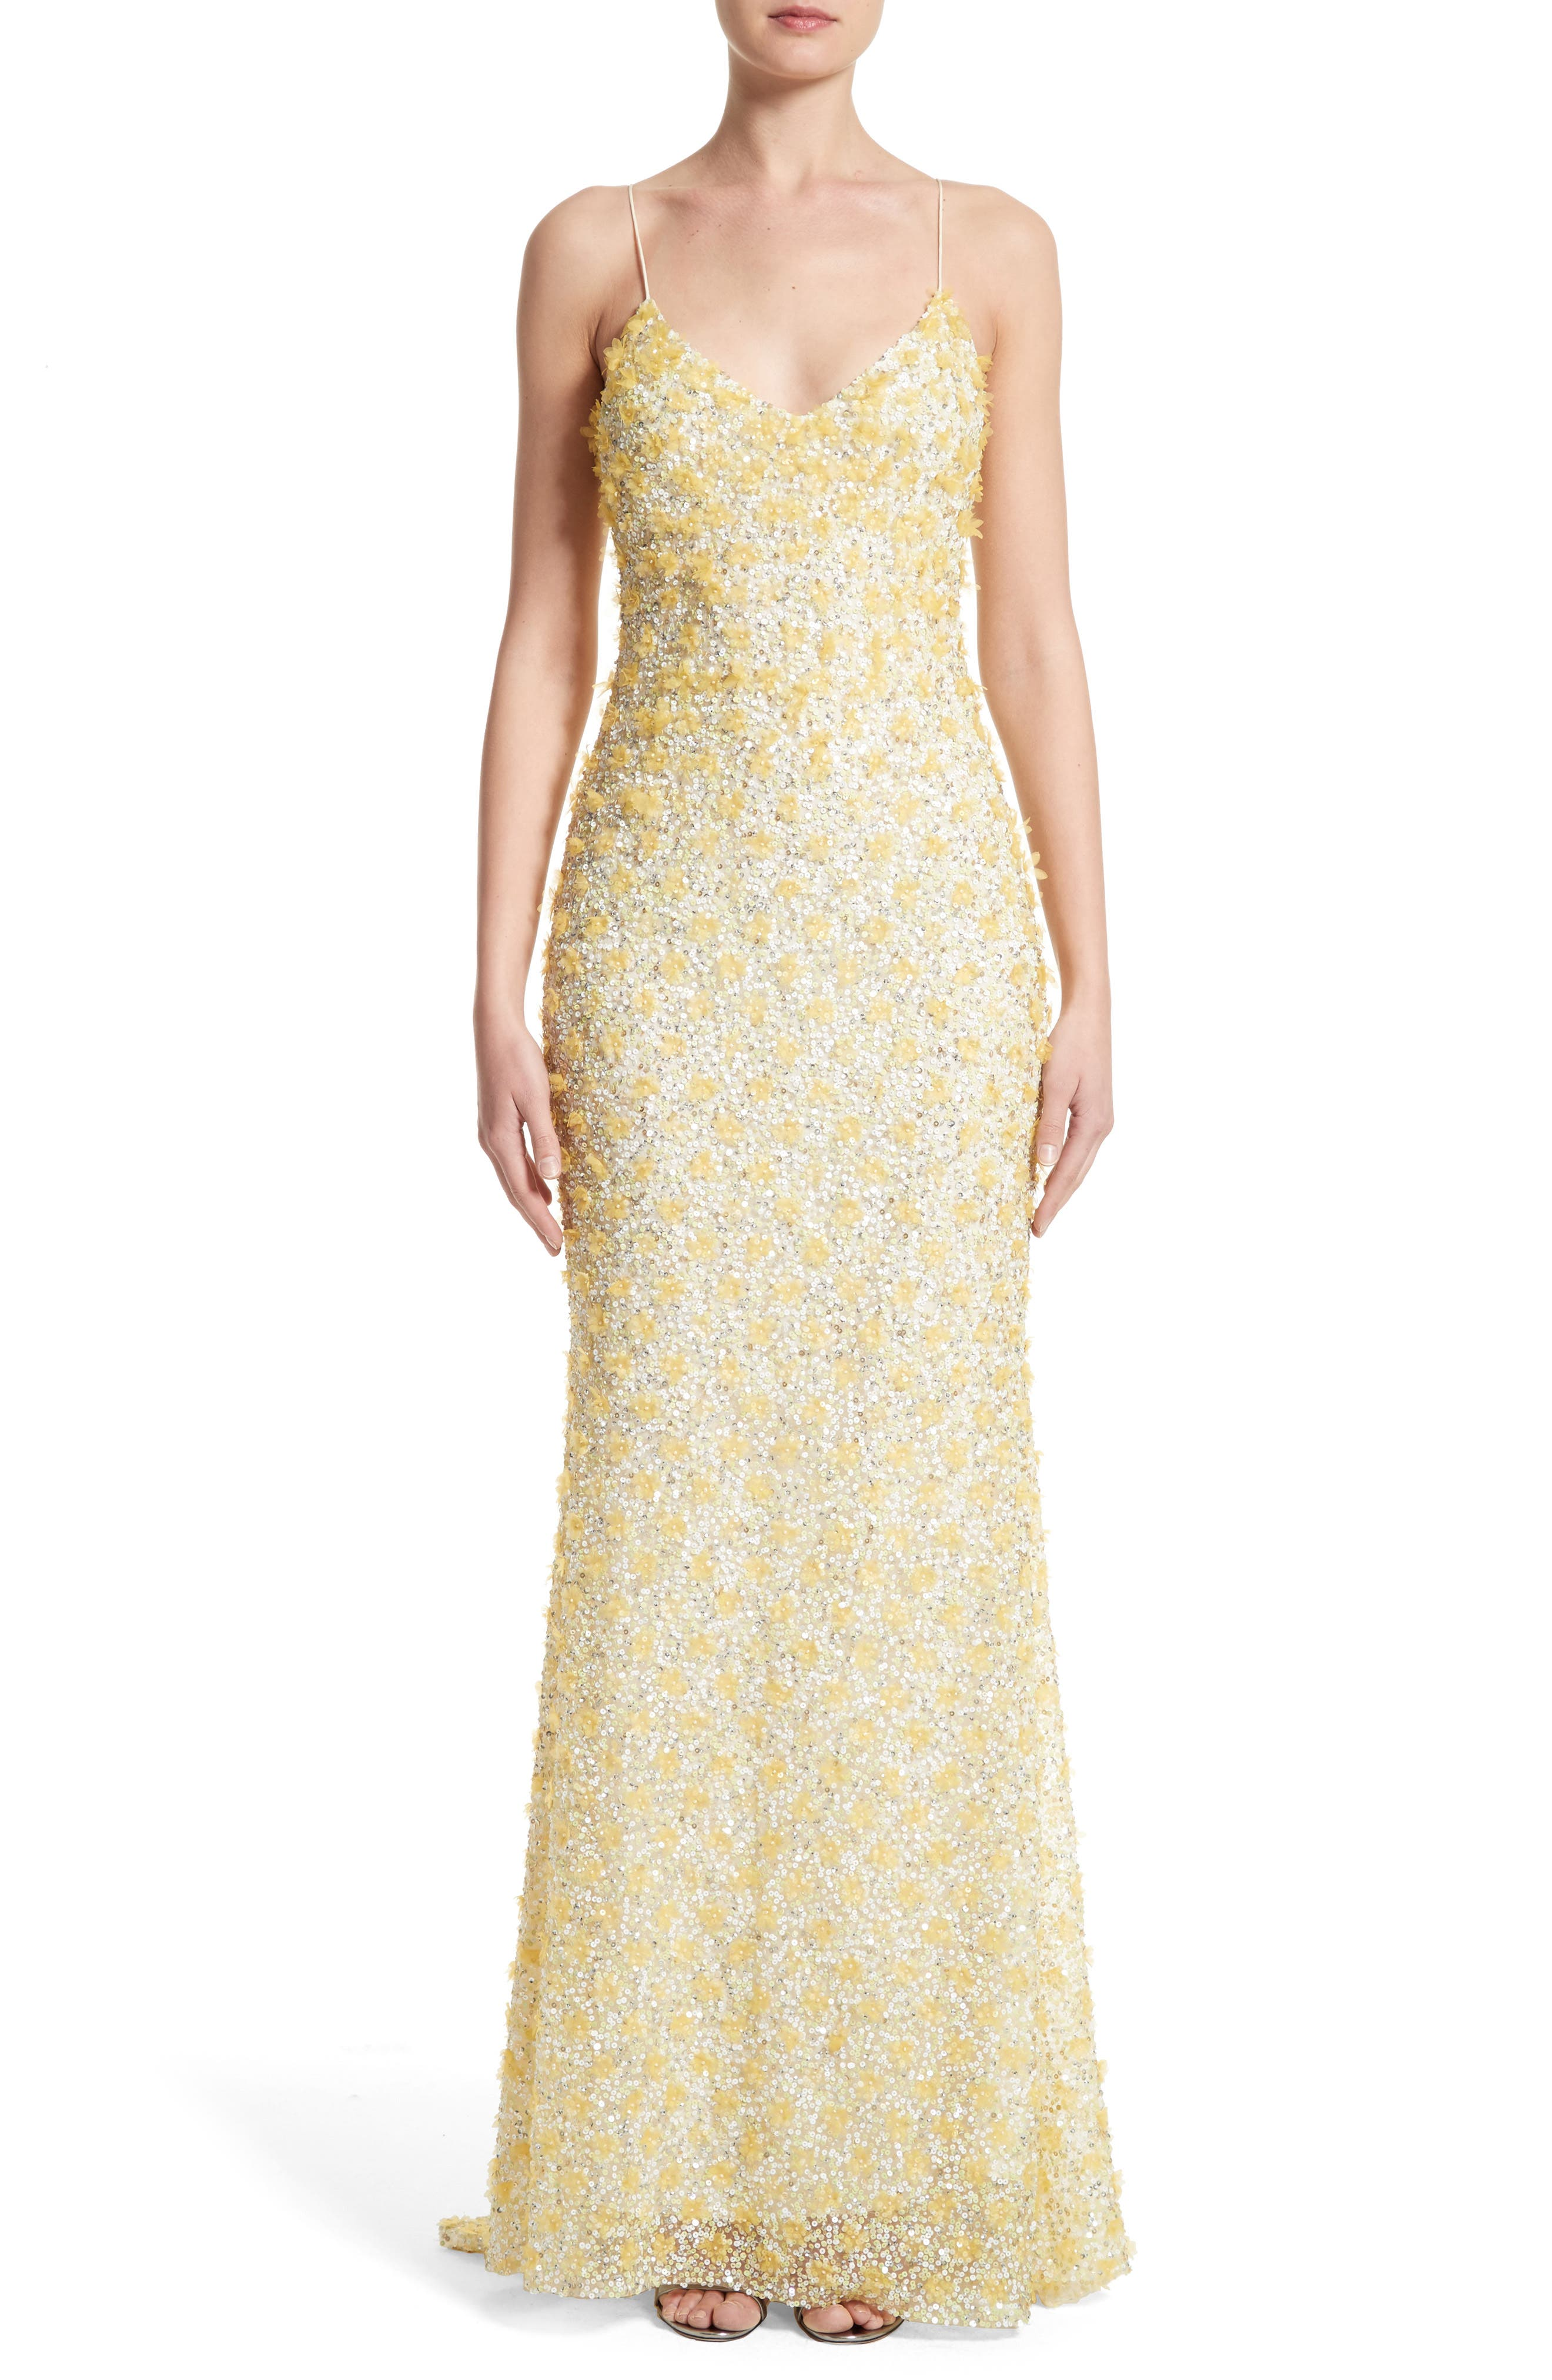 Badgley Mischka Couture Embellished Gown,                             Main thumbnail 1, color,                             700